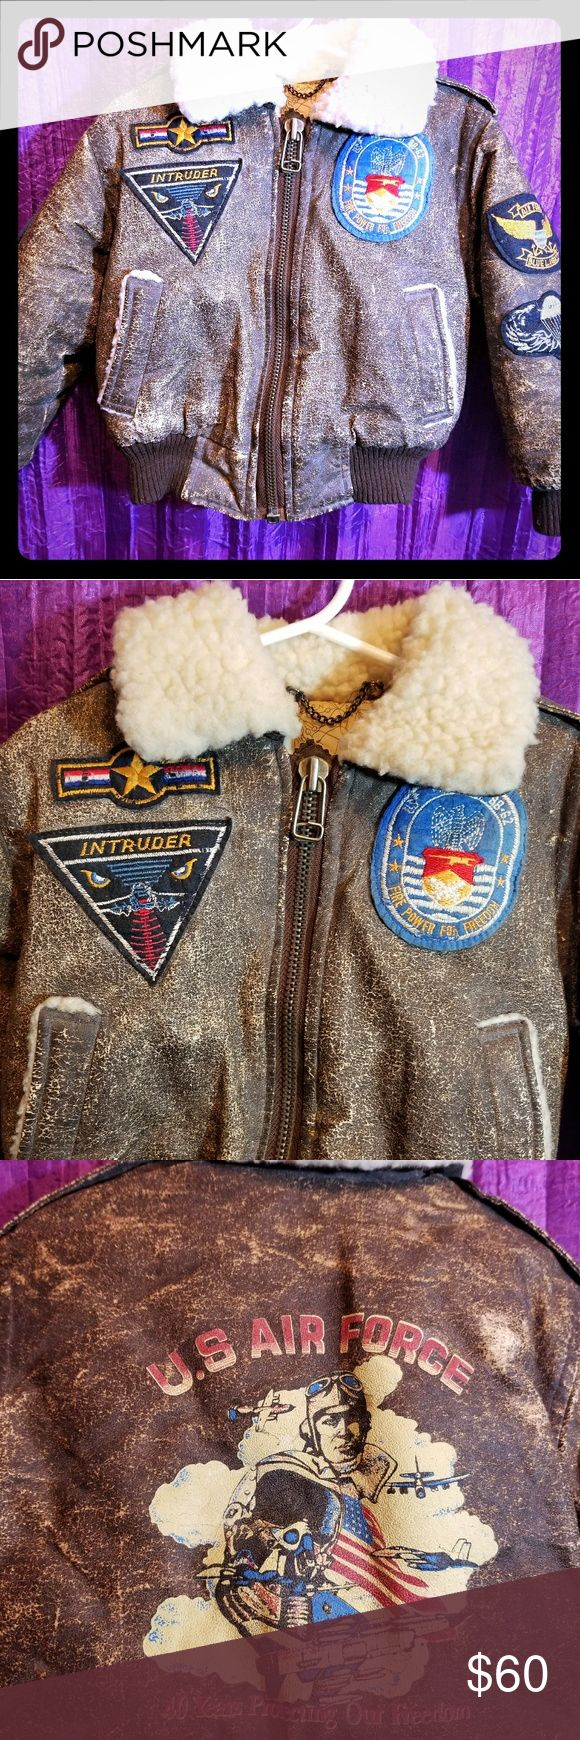 "Vintage Childs Bomber Jacket Great condition vijntage kids bomber jacket. Size 4. Has patches on front and on sleeves and has print on back that says ""U.S. Air Force - 40 Years Protecting Our Freedom"" TopStar Jackets & Coats Puffers"